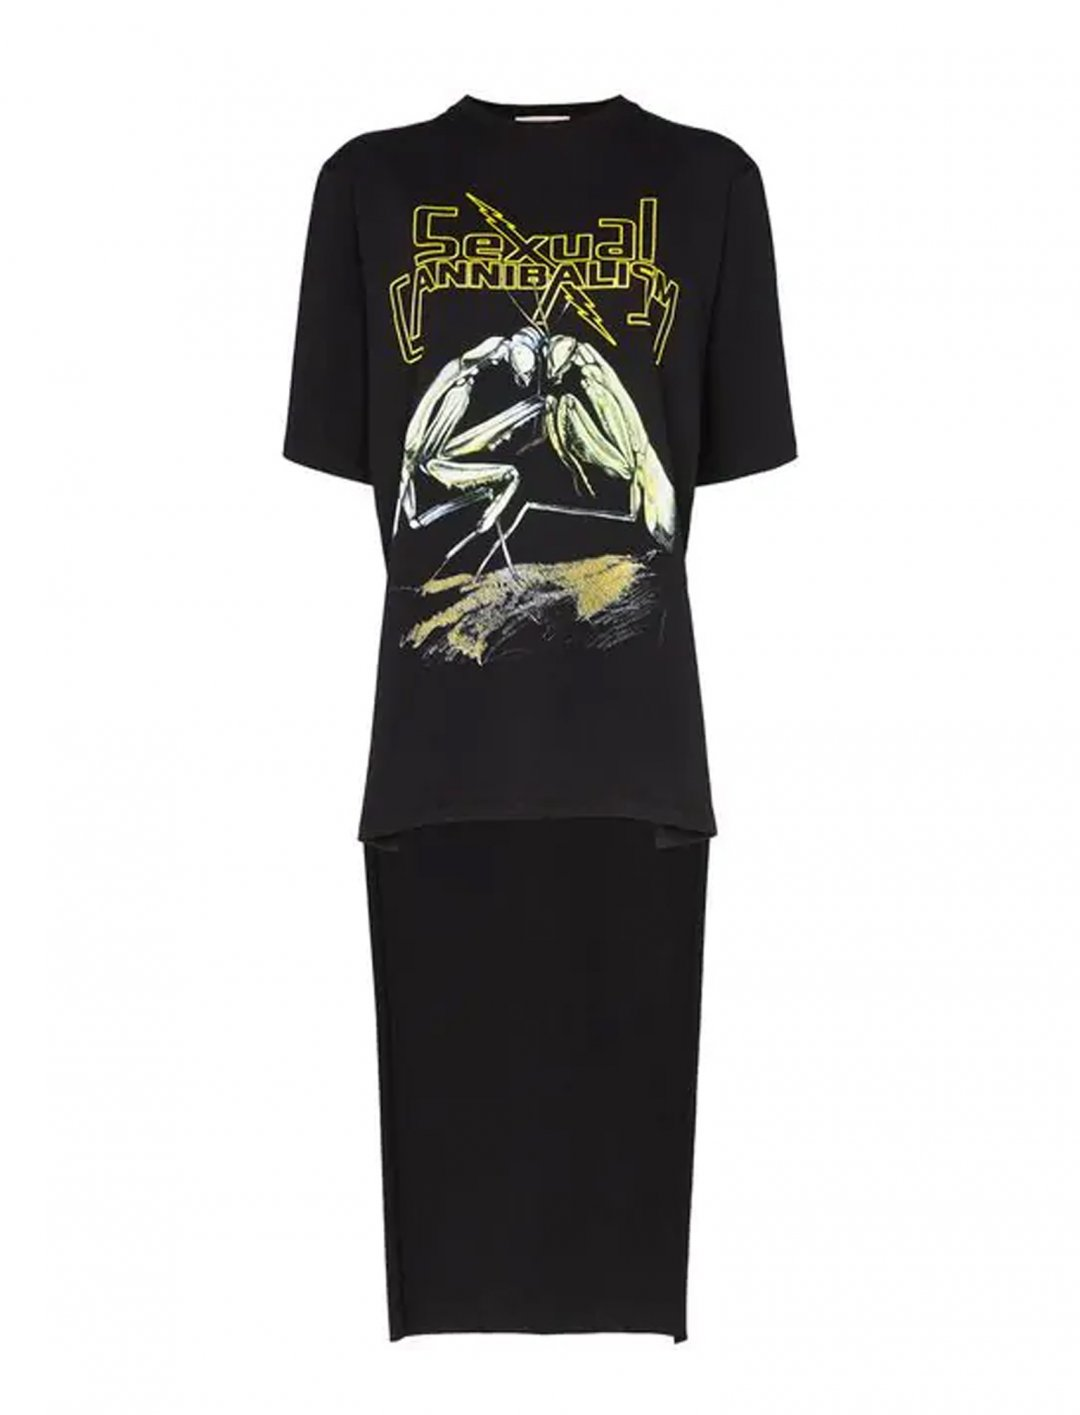 "'Sexual Cannibalism' T-shirt {""id"":5,""product_section_id"":1,""name"":""Clothing"",""order"":5} Christopher Kane"